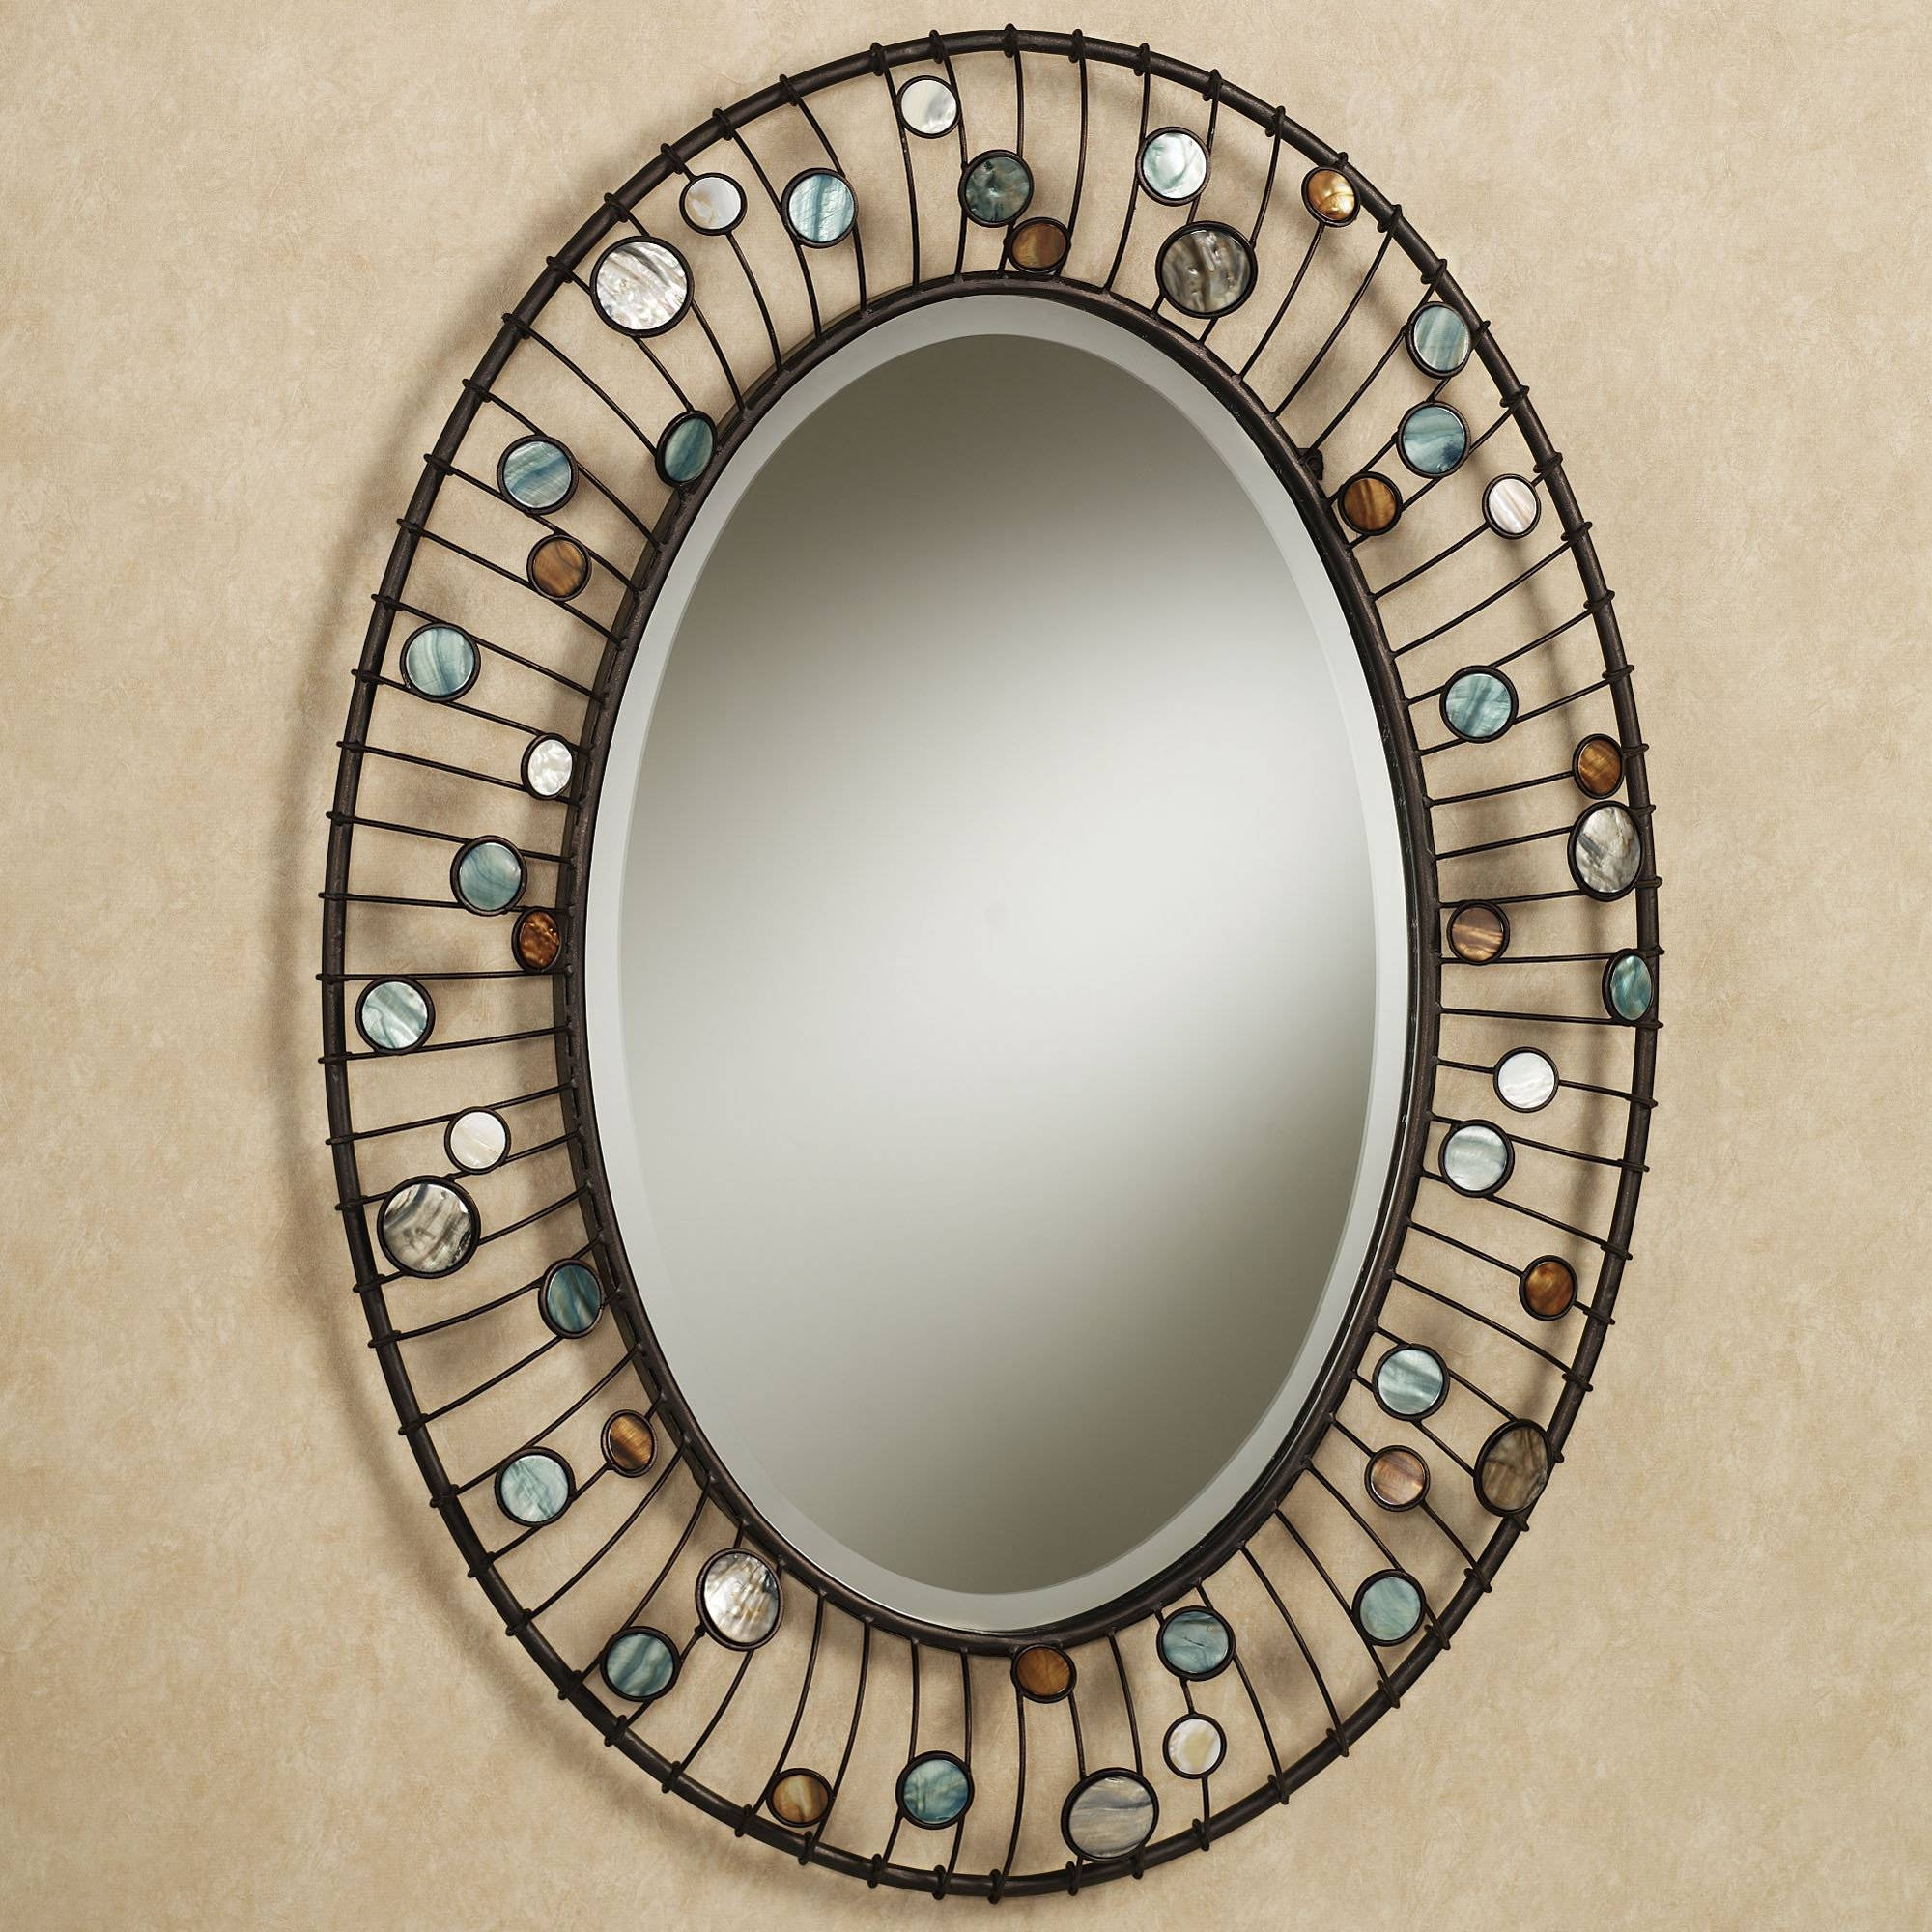 Unique Mirrors.find This Pin And More On Mirrors. Elegant Unique for Odd Shaped Mirrors (Image 21 of 25)